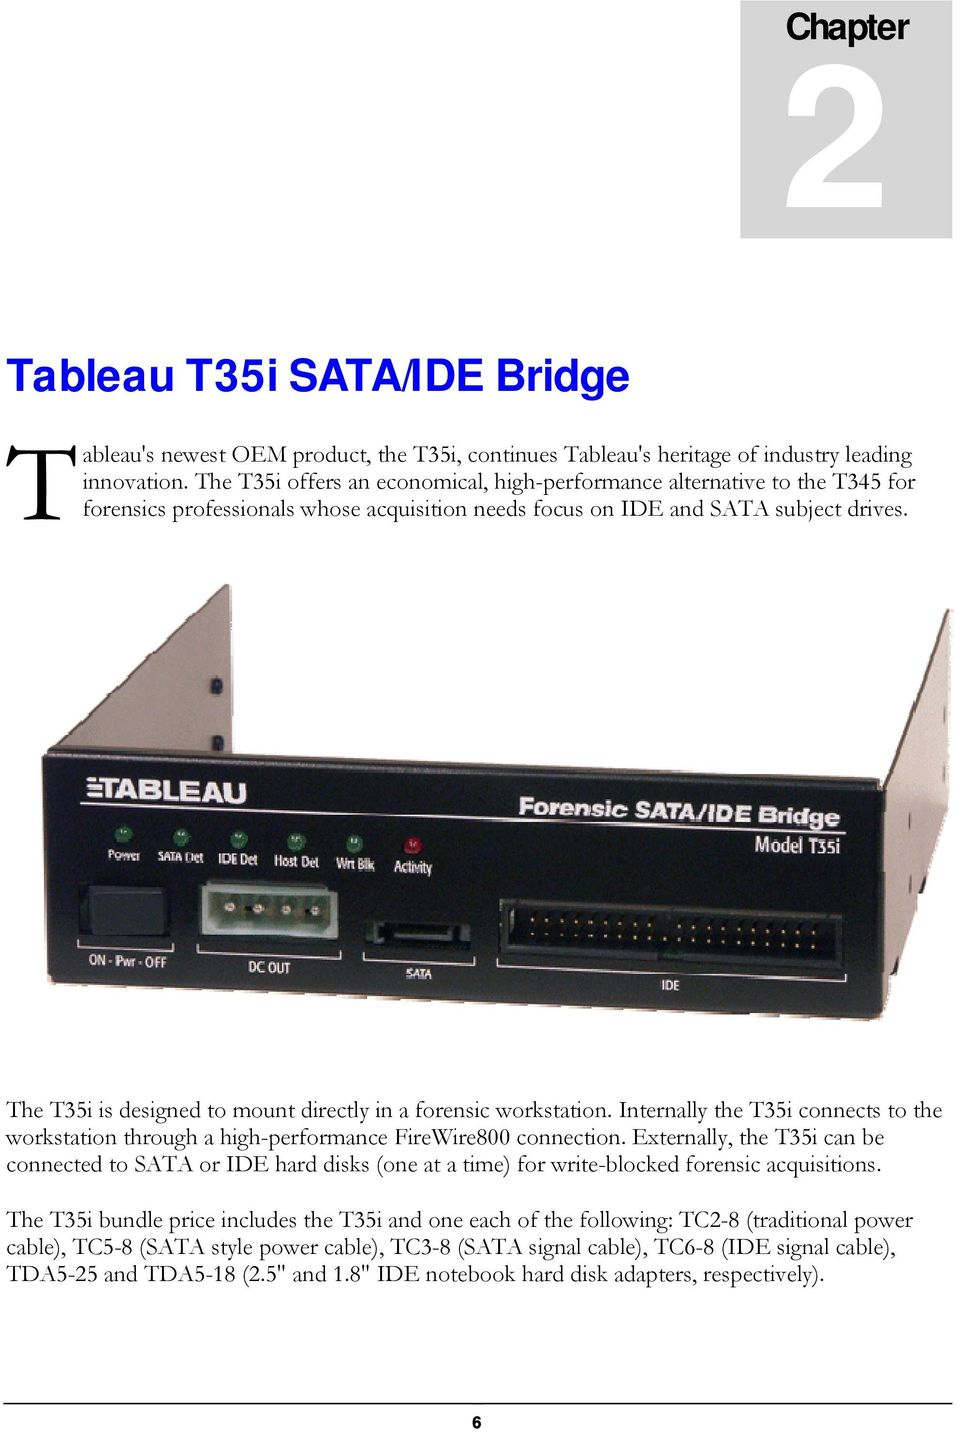 Volume Forensic Computers Tableau T35i Sata Ide Bridge User Guide Pdf Notebook Interface Cdrom To Usb External Drive Circuit Boardred The Is Designed Mount Directly In A Workstation Internally Connects